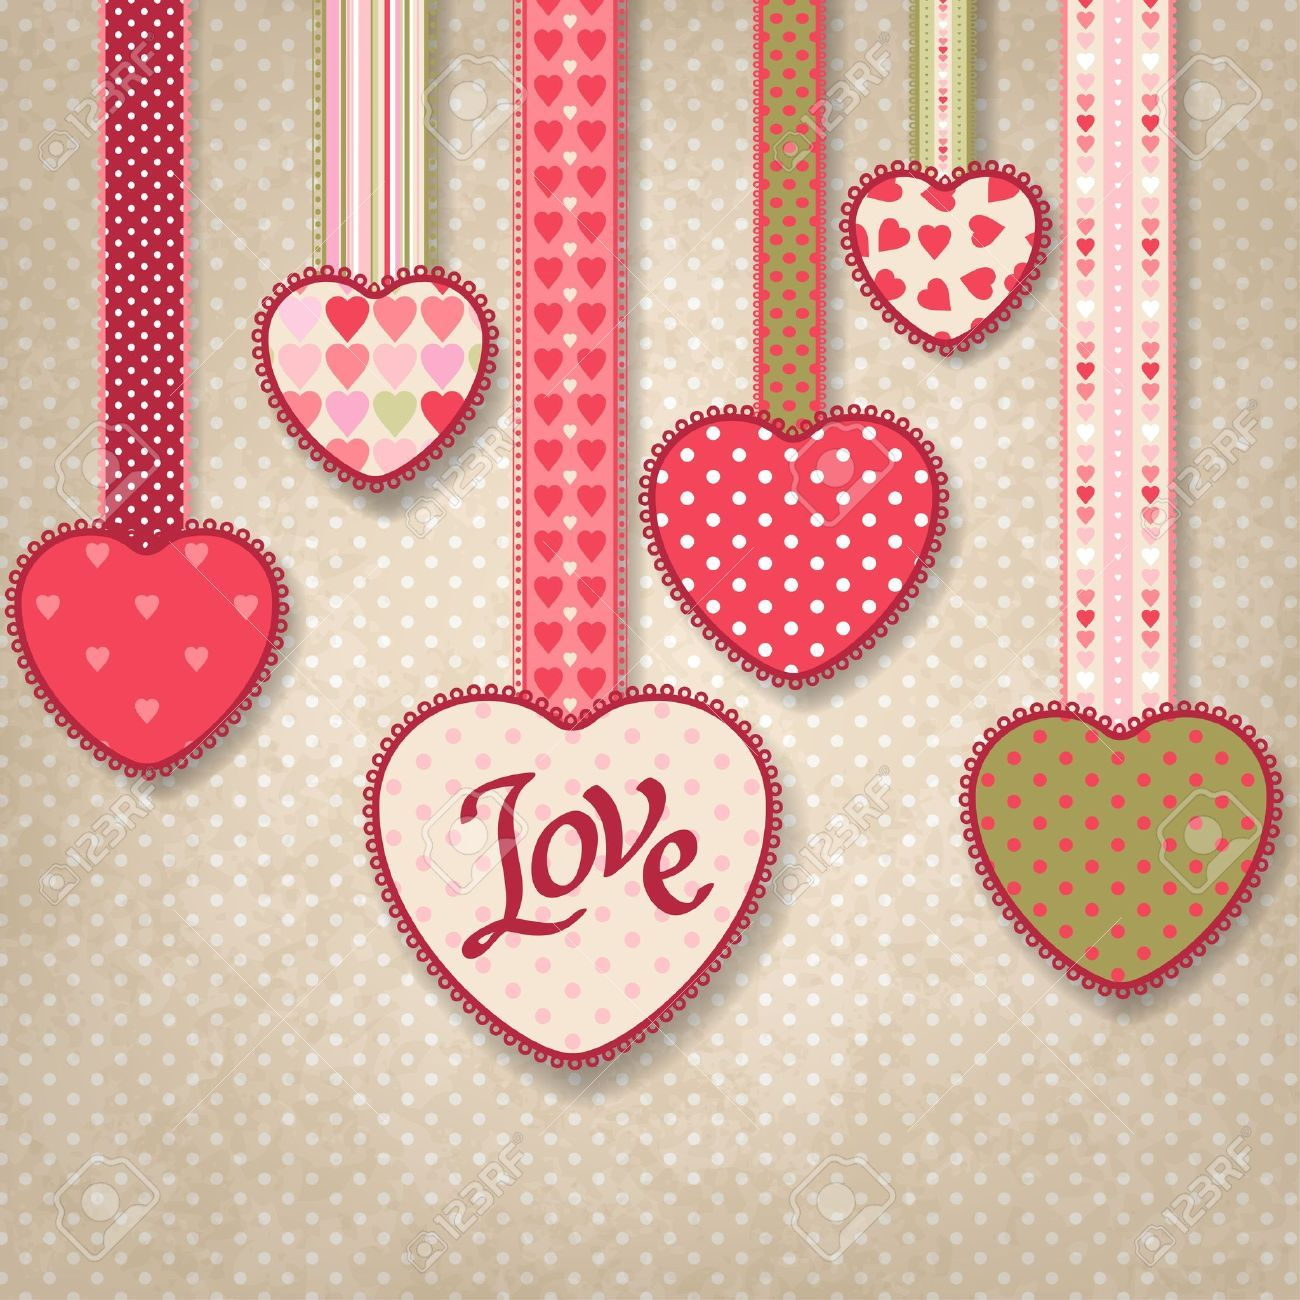 How to make scrapbook paper designs - Retro Background Of Vintage Design With Hearts On Vectorstock